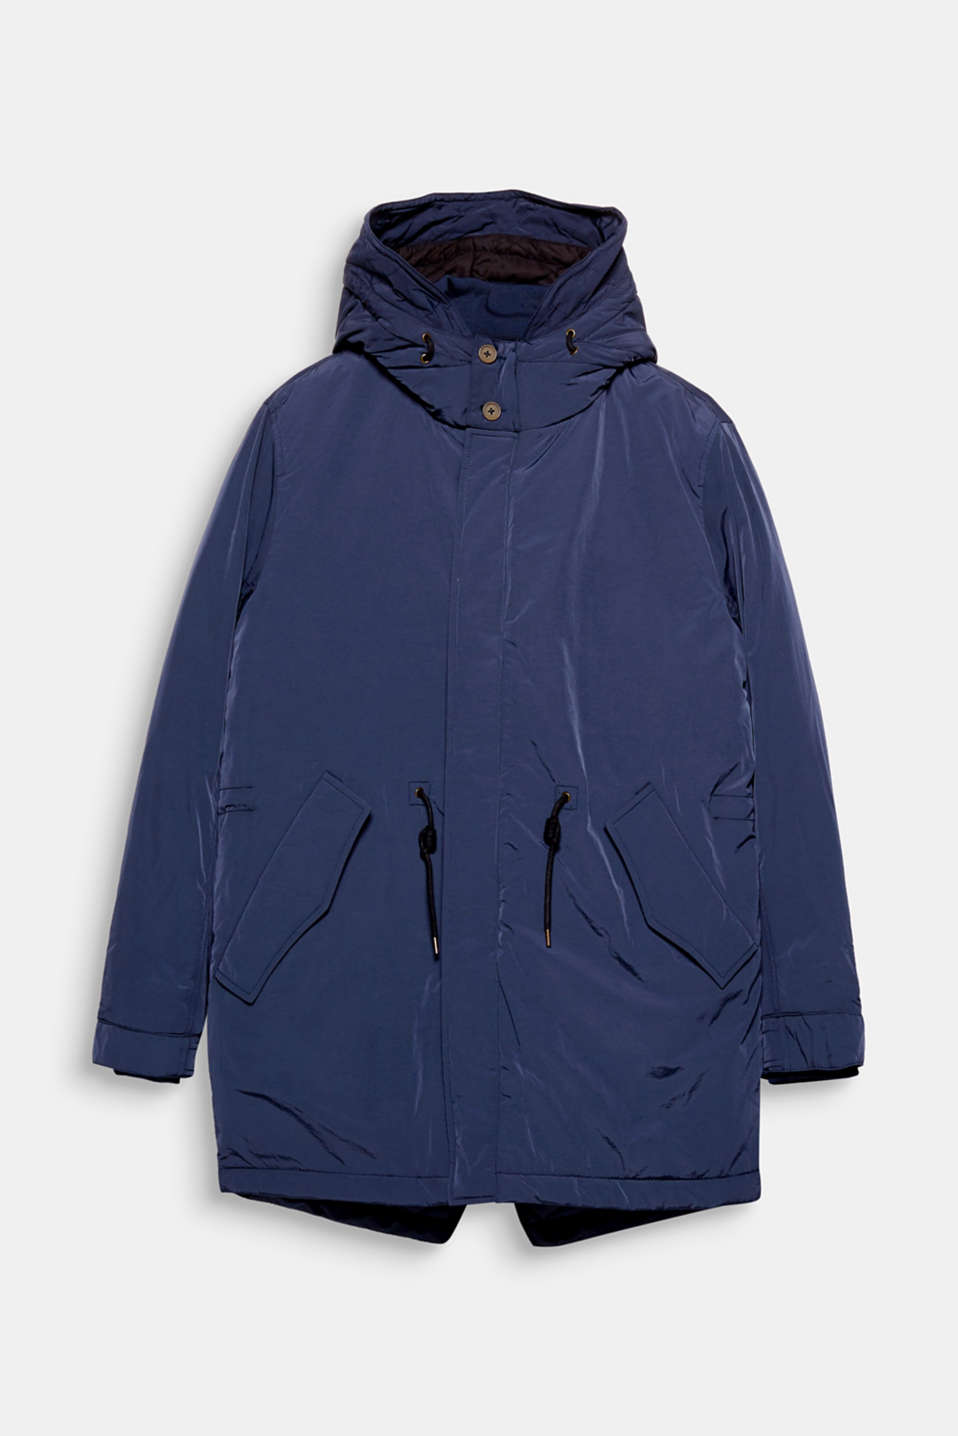 Perfect for the change in seasons: Hooded parka with a shimmering outer surface.